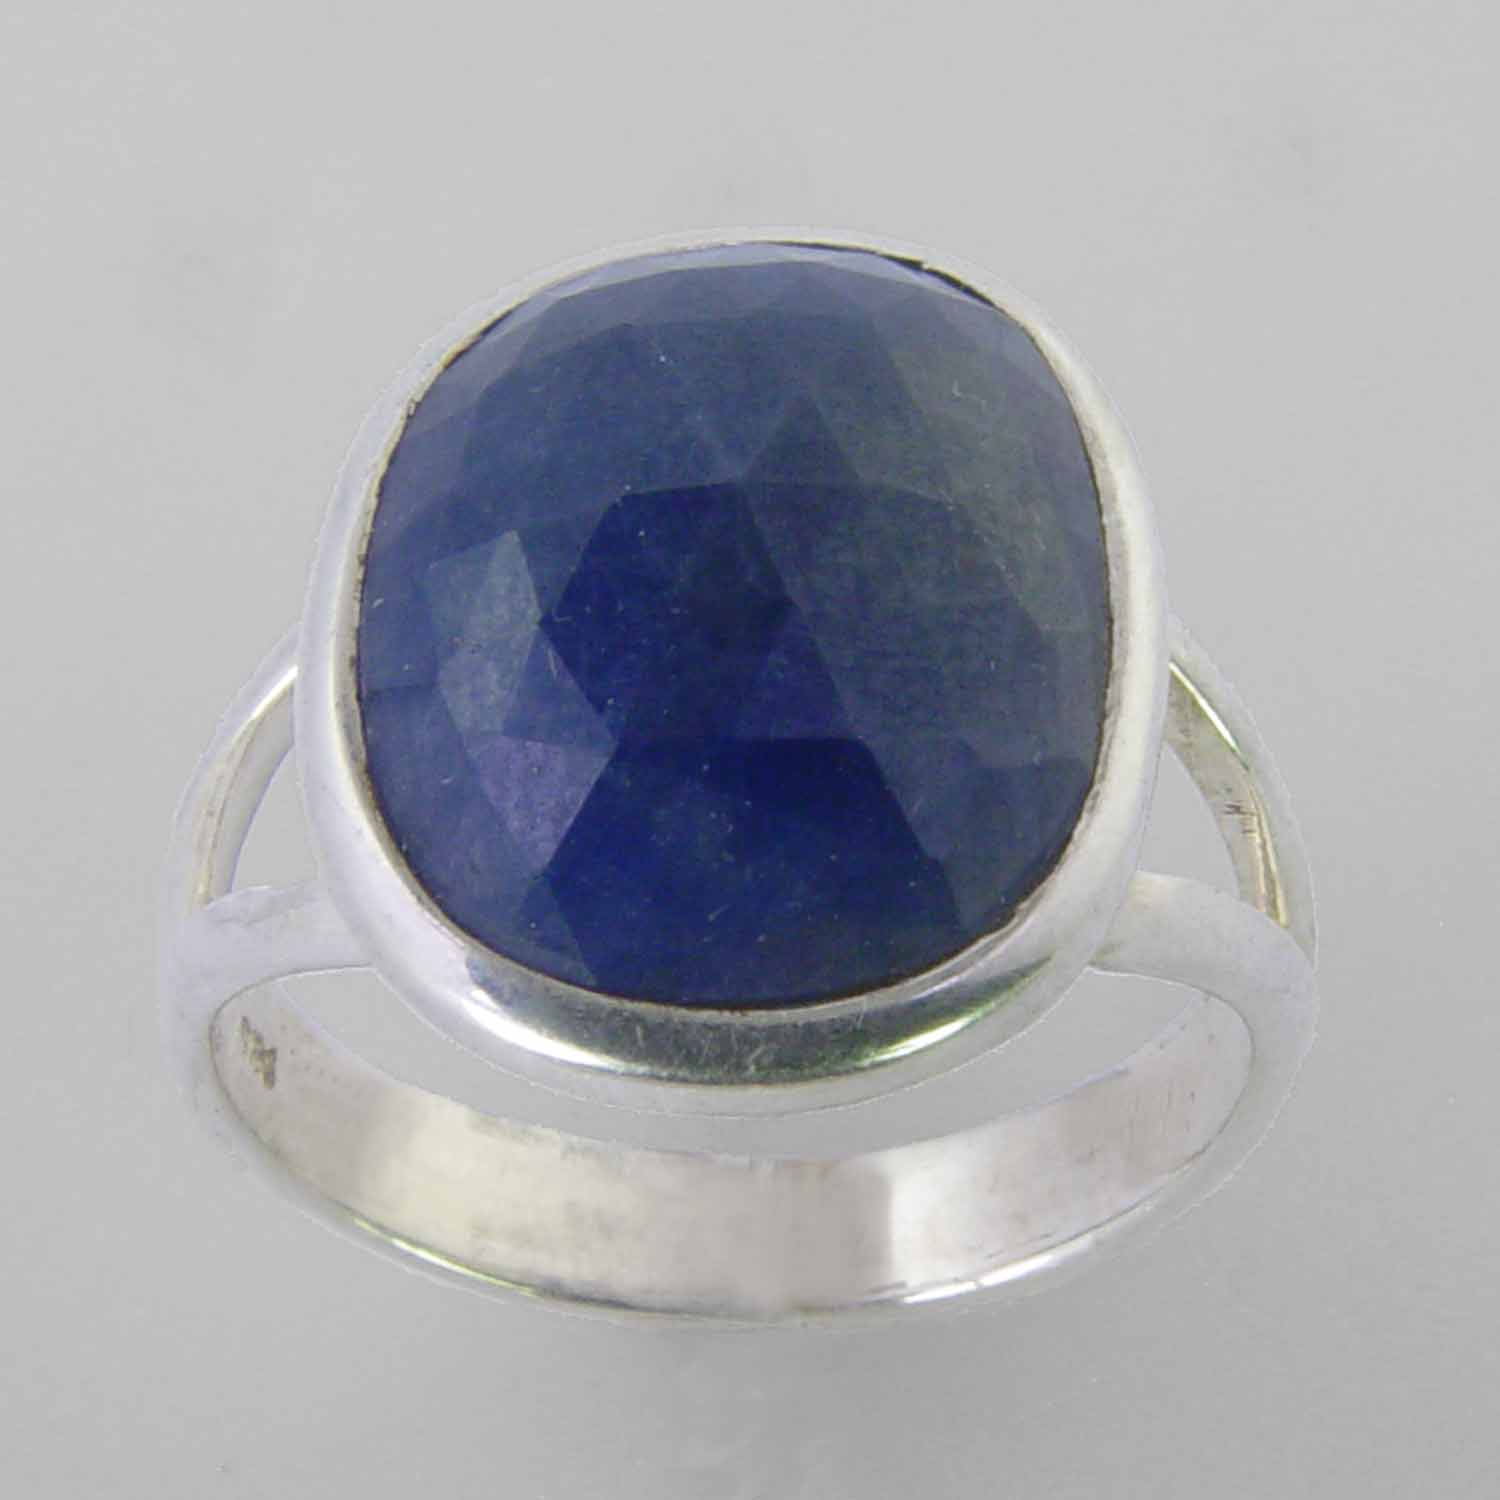 Blue Sapphire 7 ct Faceted Oval Cab Sterling Silver Ring, Size 8.5